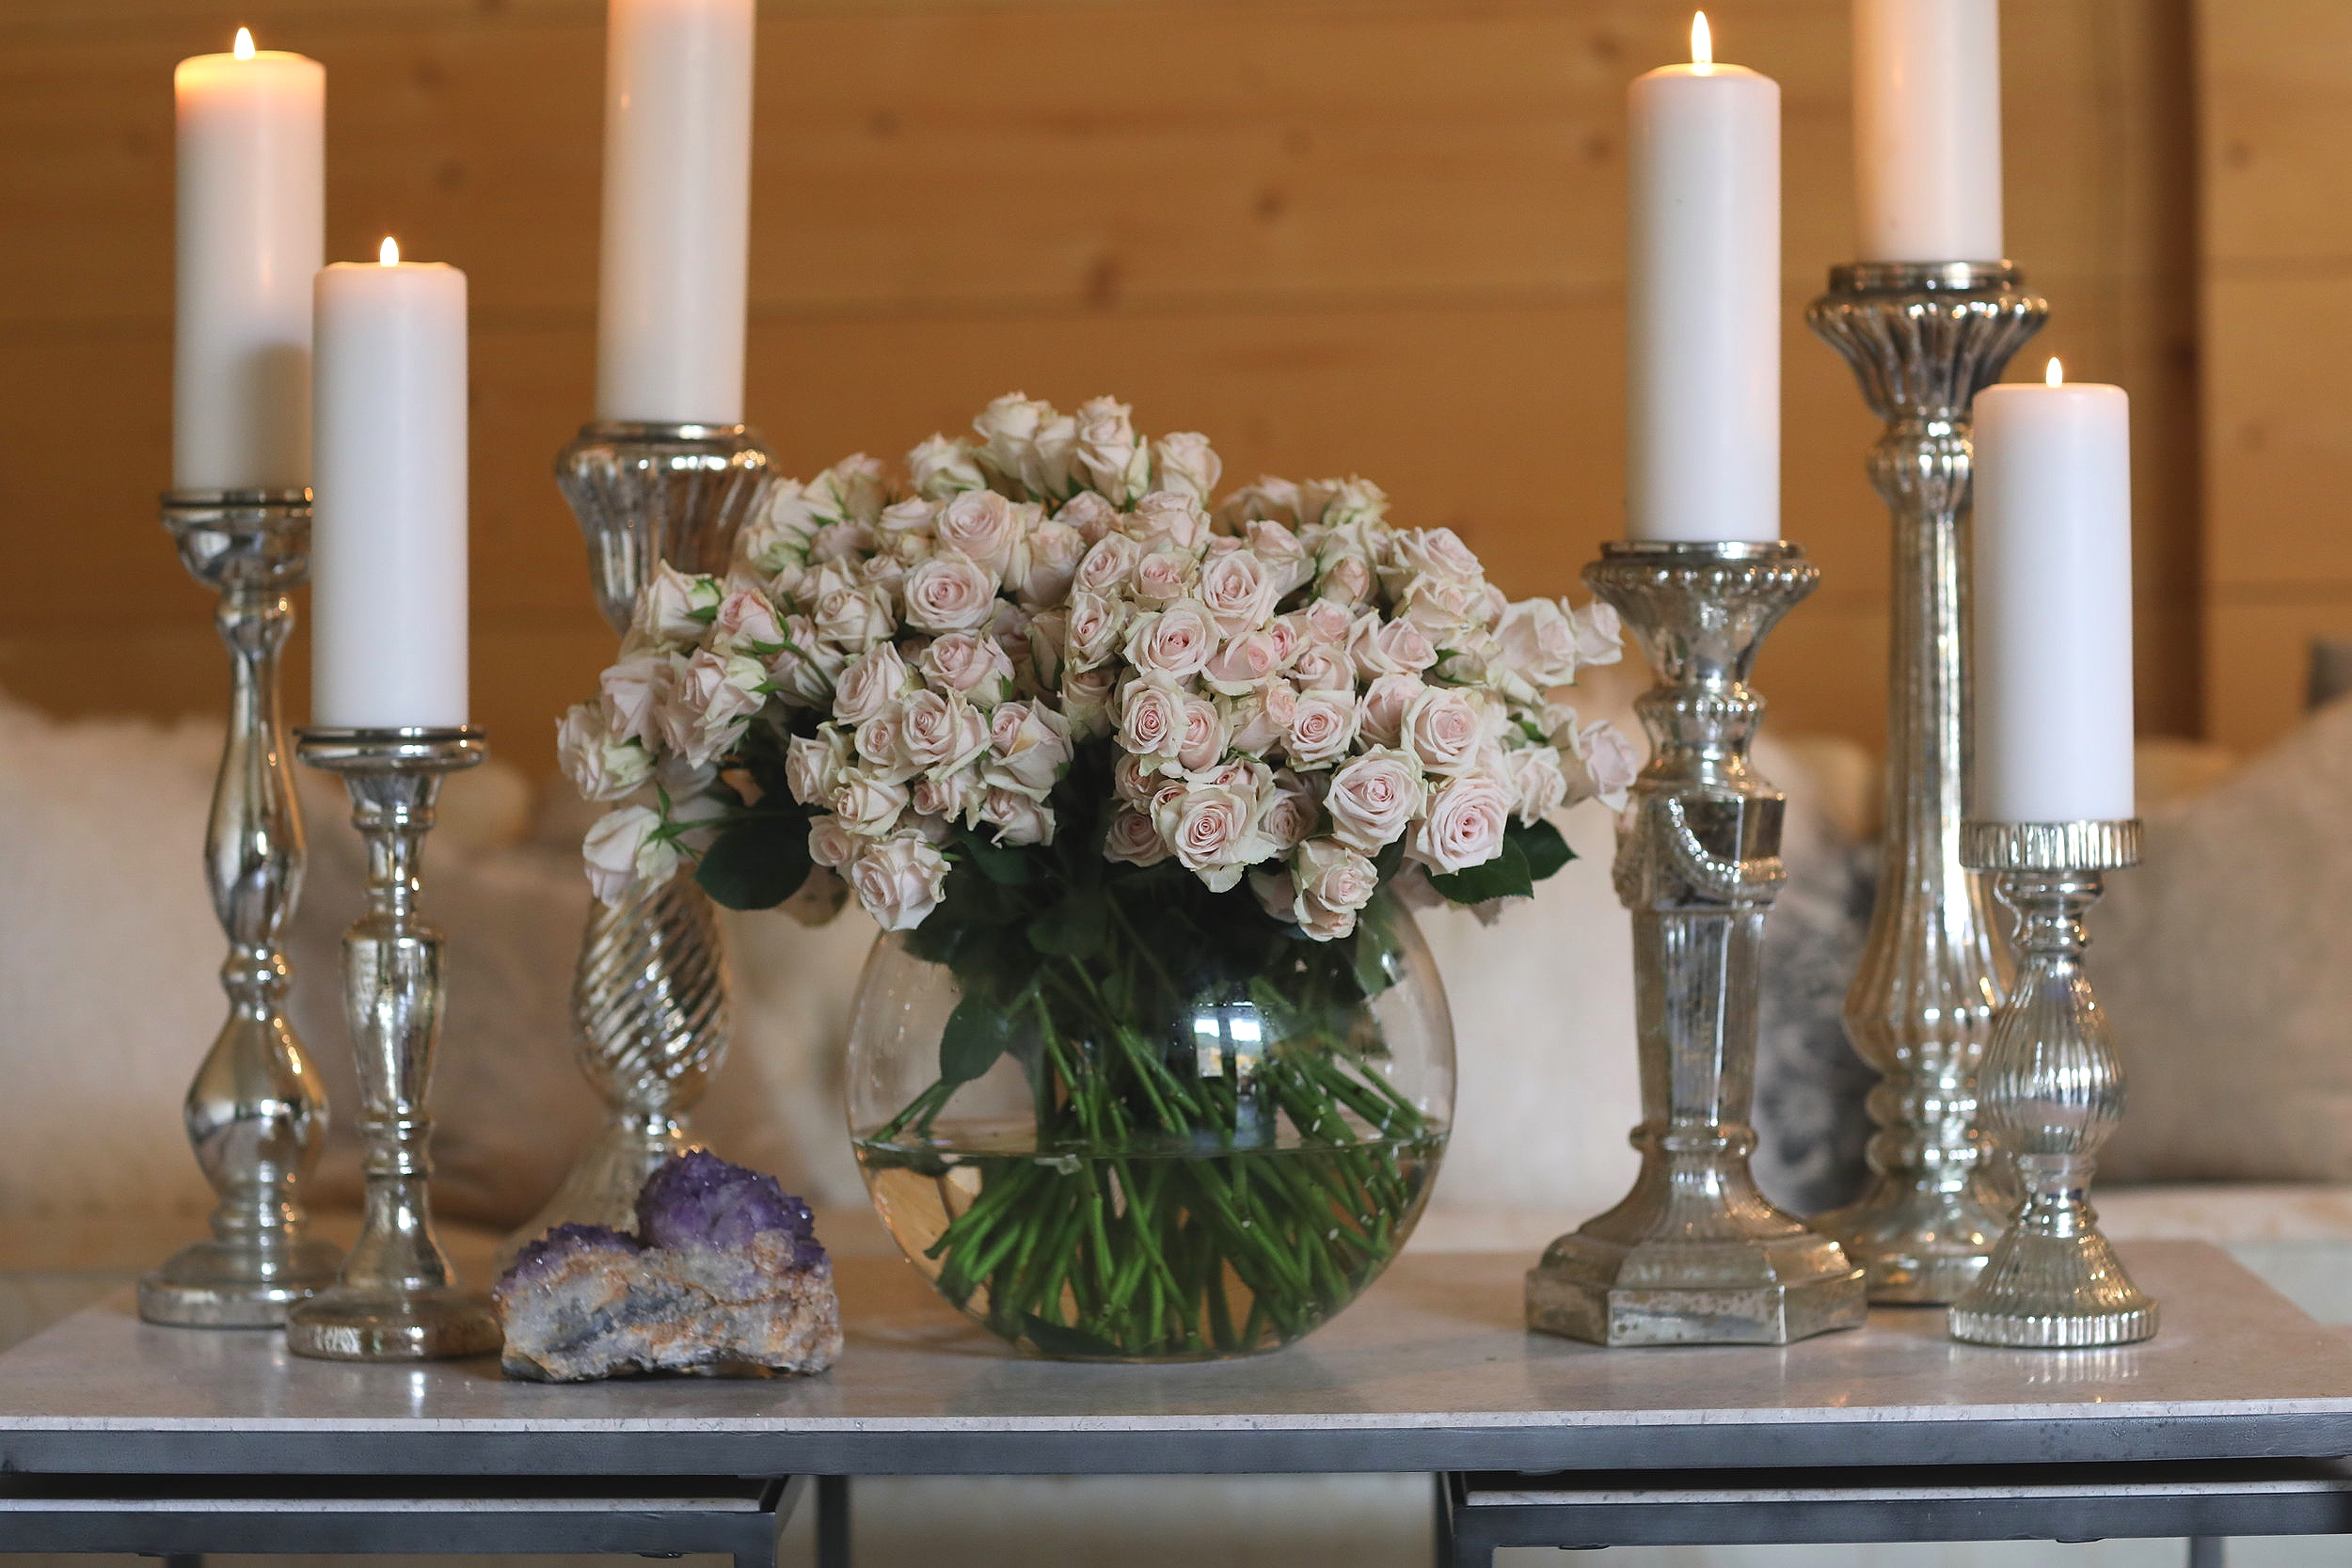 Cylinder glass candle holders with white pillar candles light up the Temecula Valley.